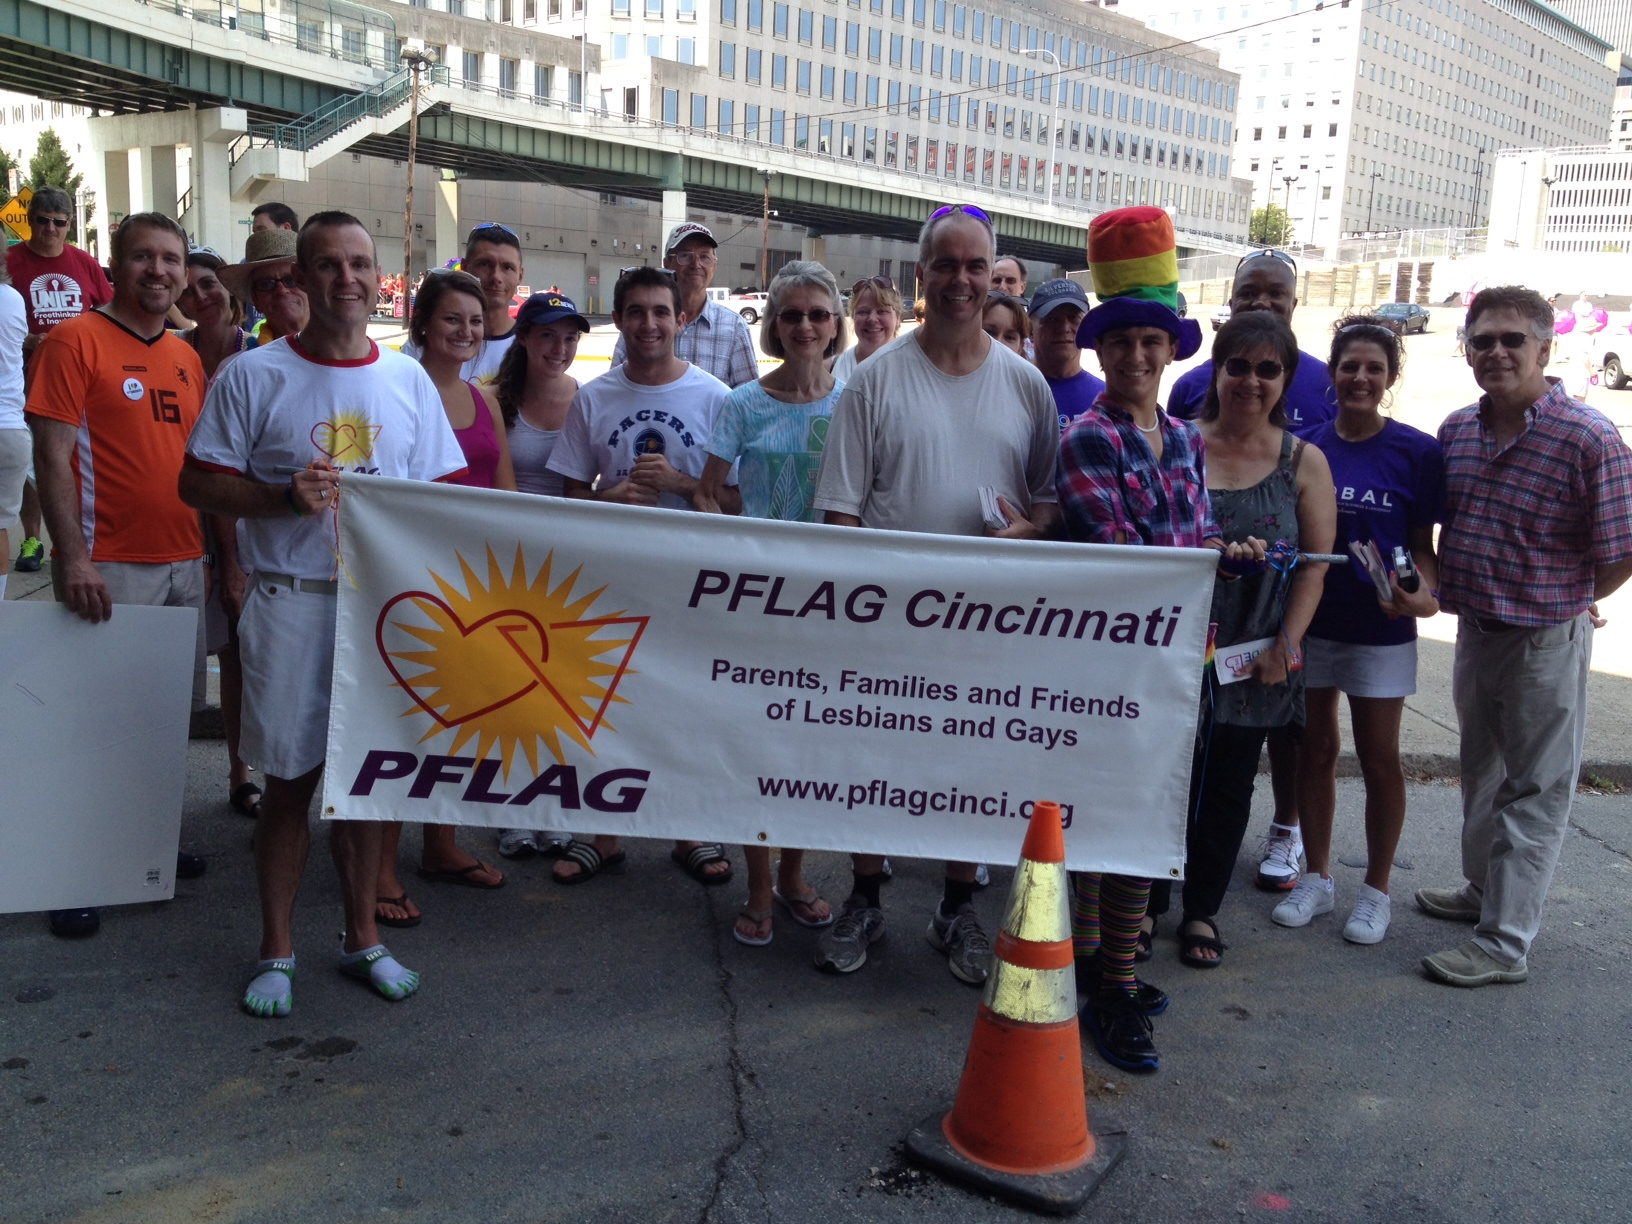 PFLAG at the Pride parade